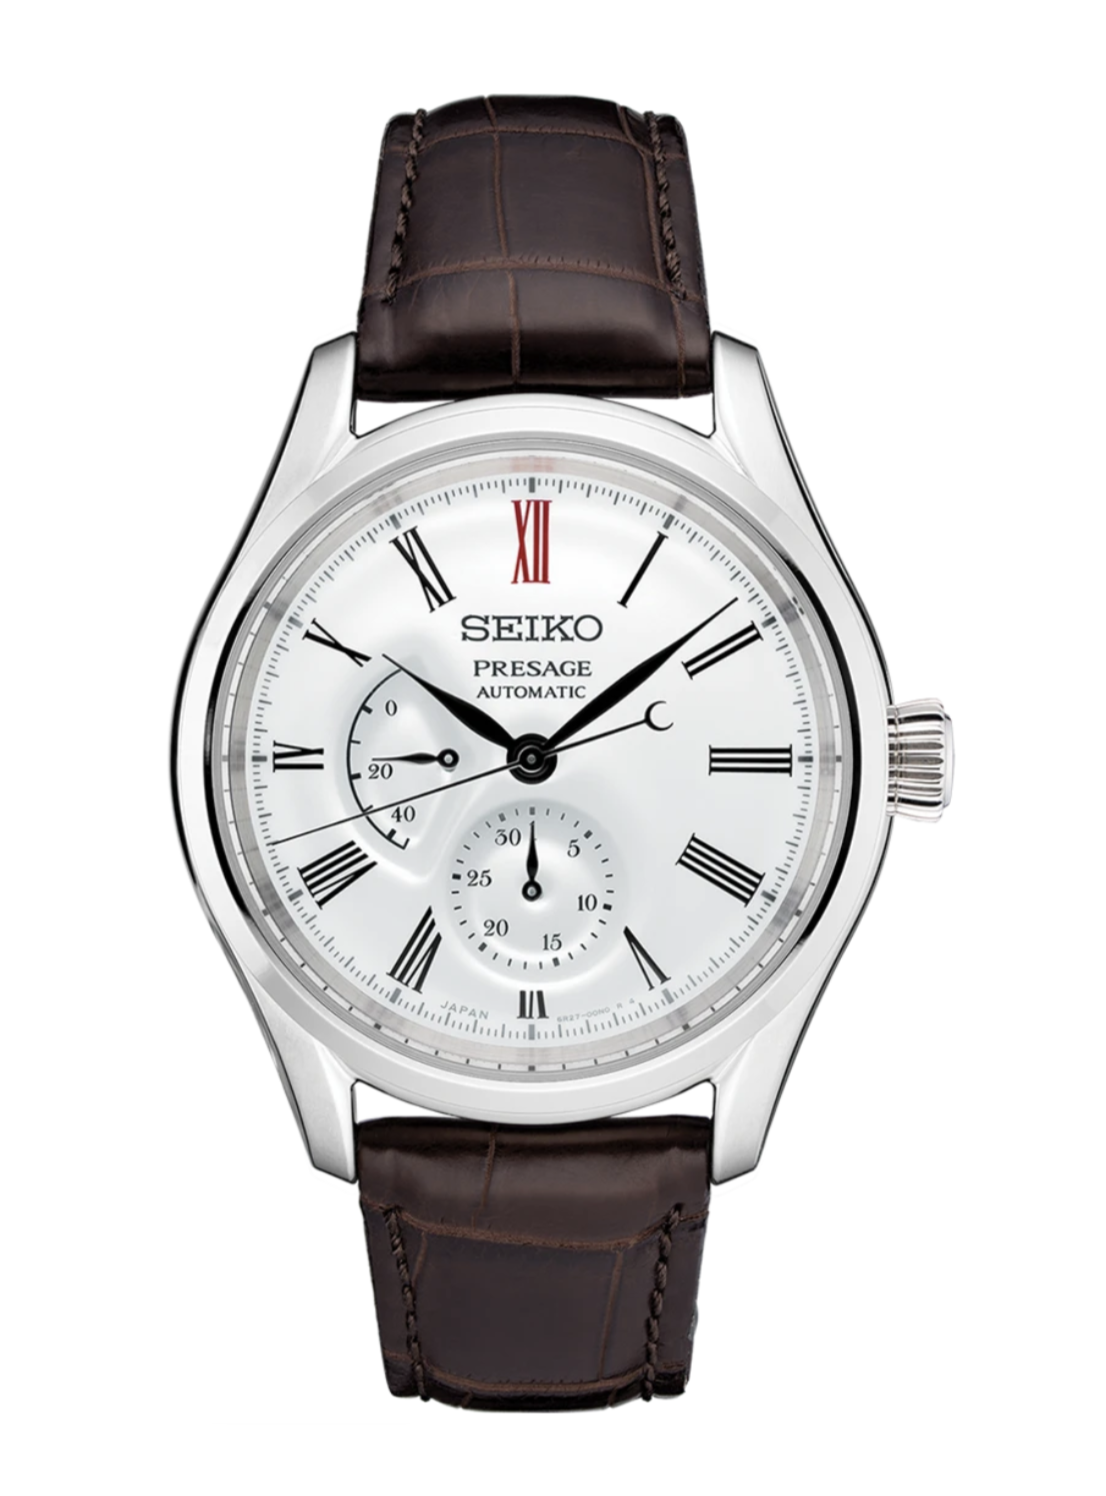 Seiko Presage Arita Automatic Watch with White Porcelain Dial